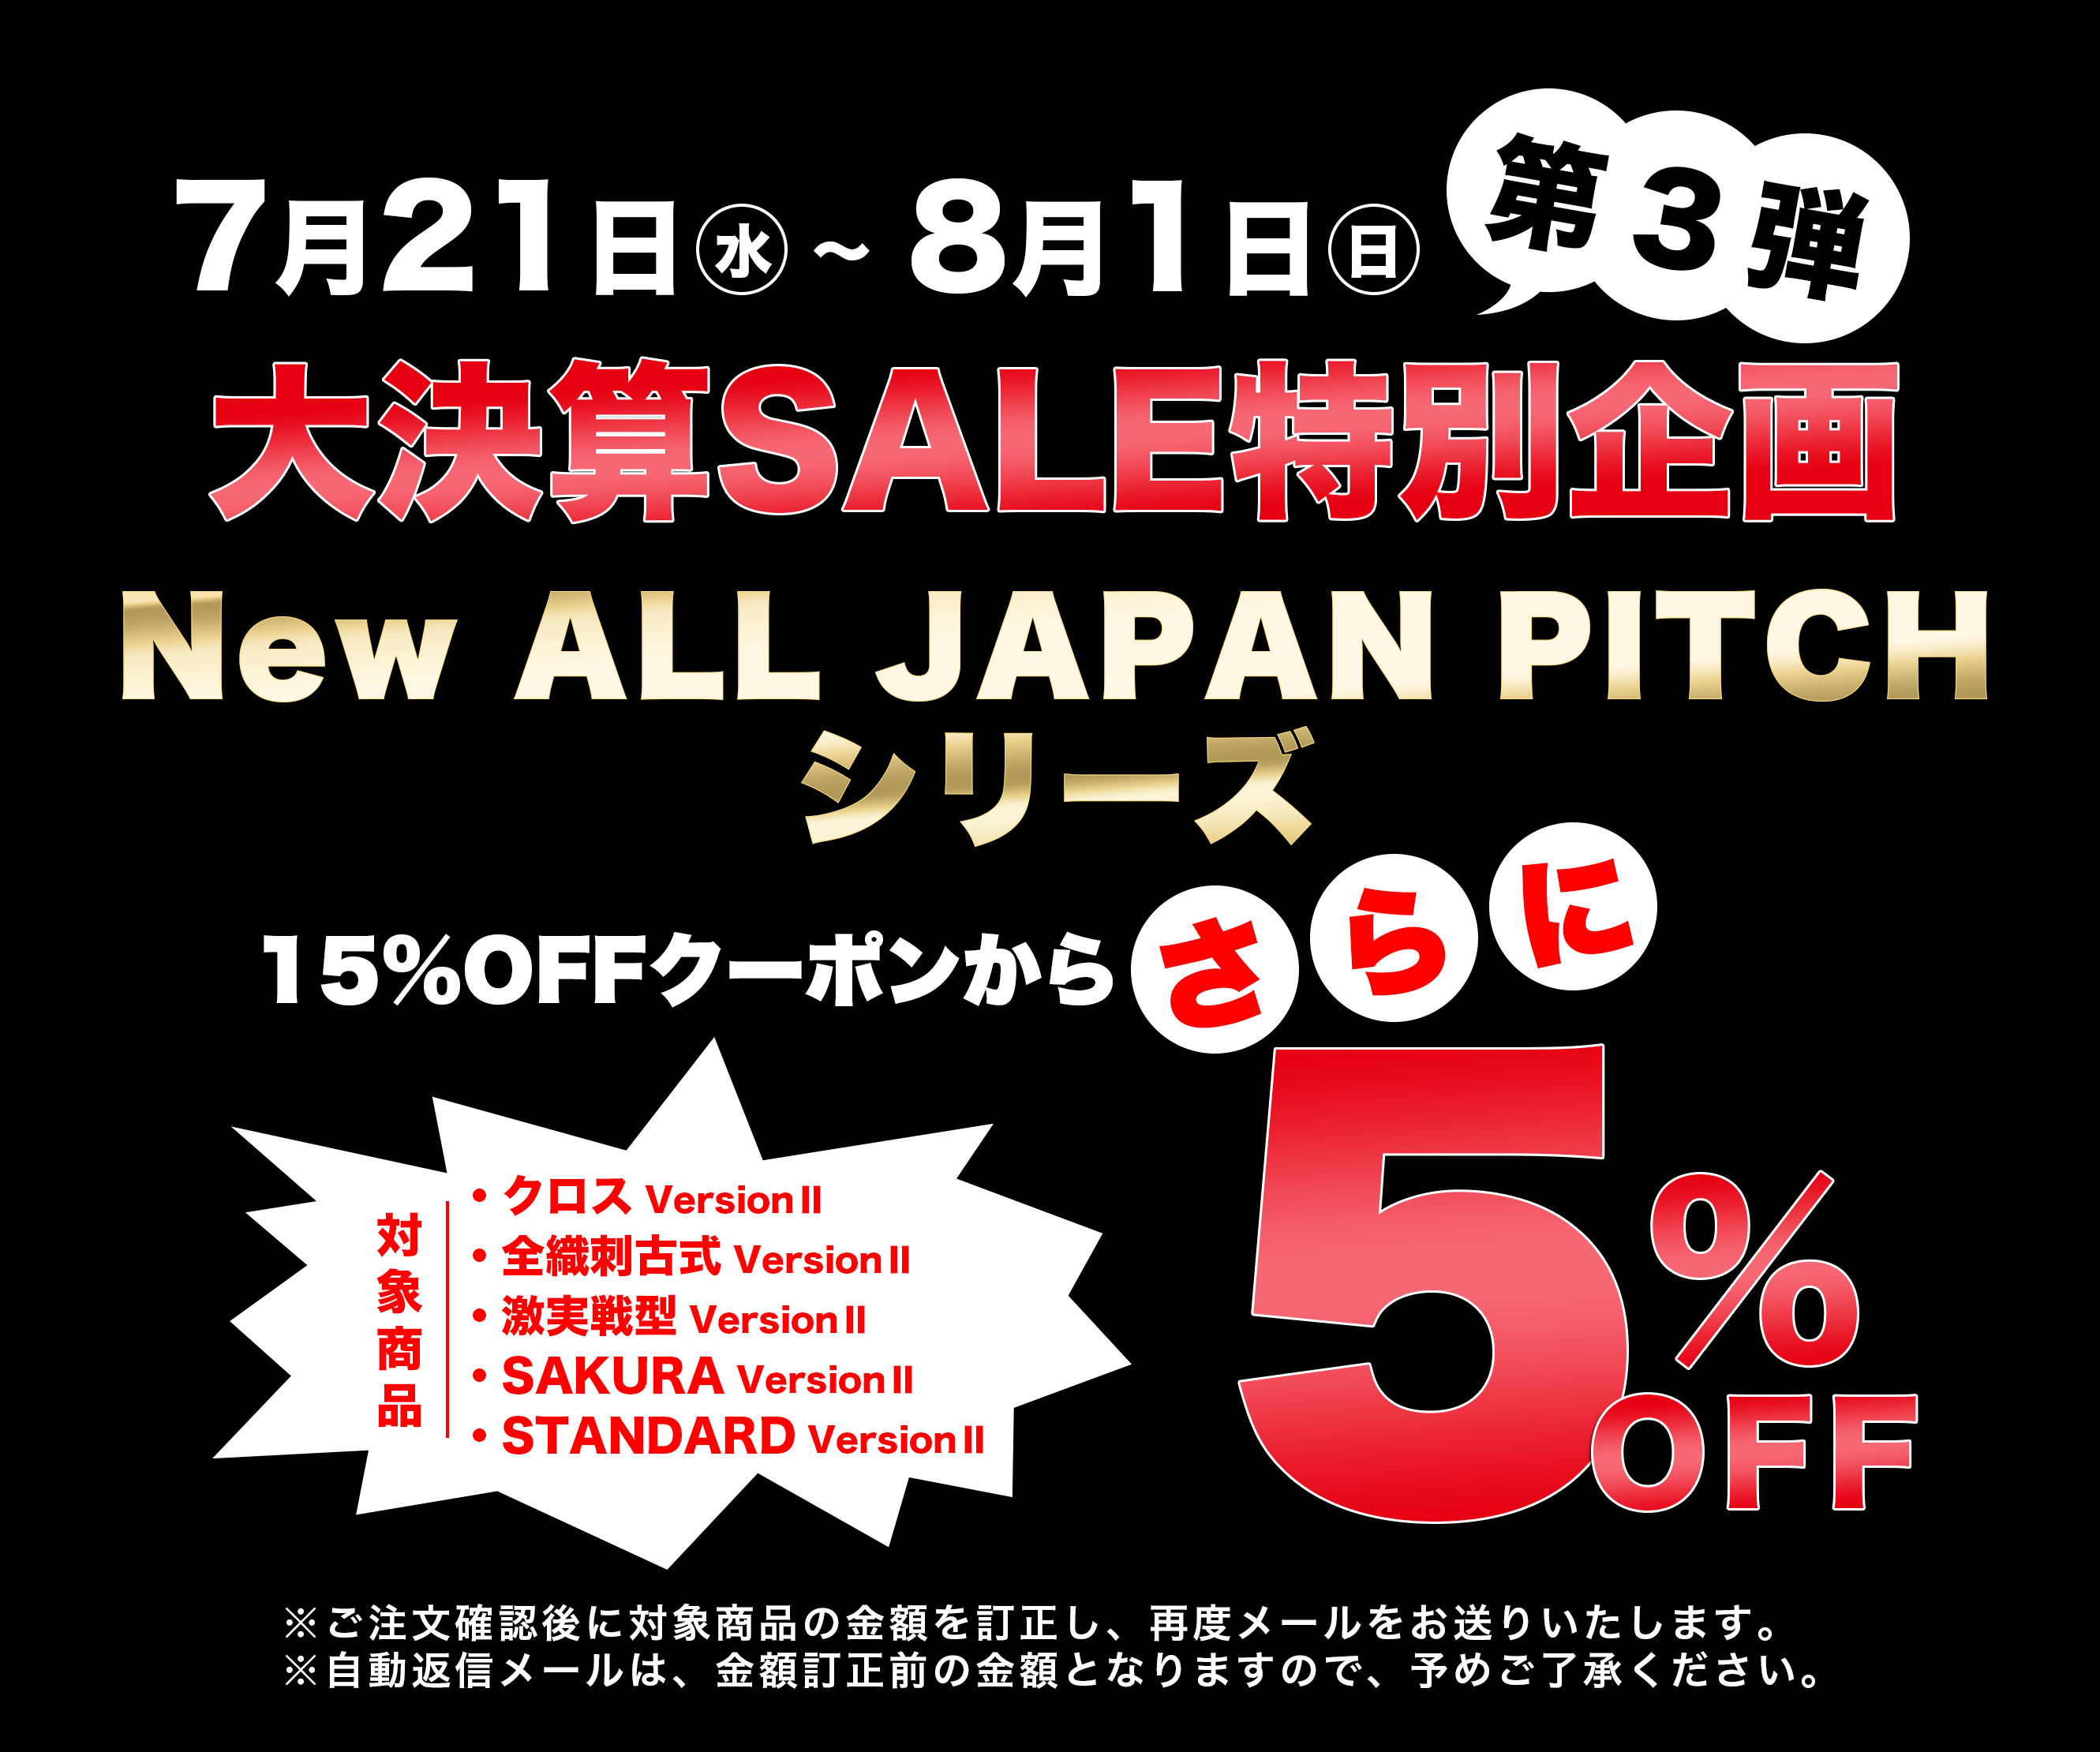 New ALL JAPAN PITCH さらに5%OFFセール開催中!